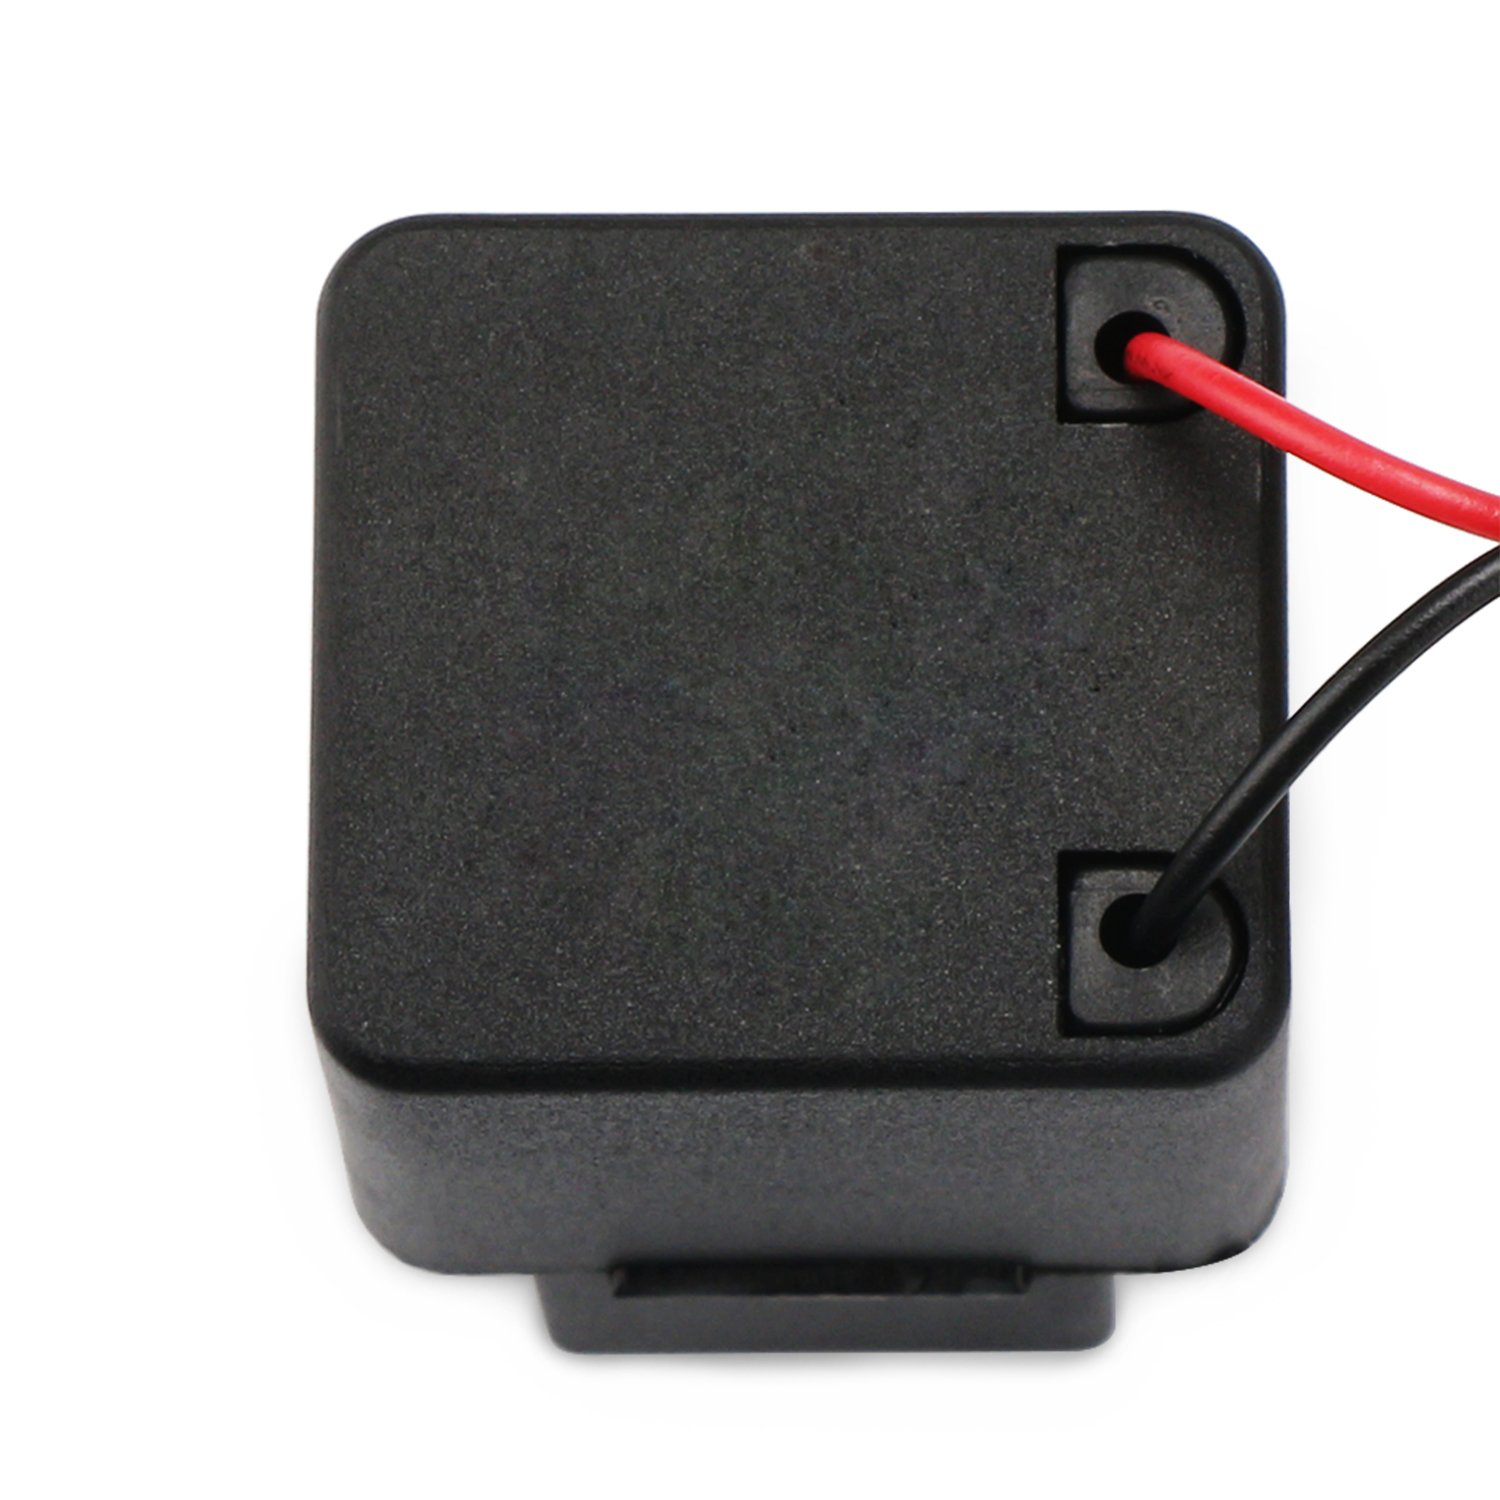 Current Transformer Drok 100a 100ma Ac Transformers Mini In Relay Clip On Sensor Split Core Amp Sensing Easy To Install Ct